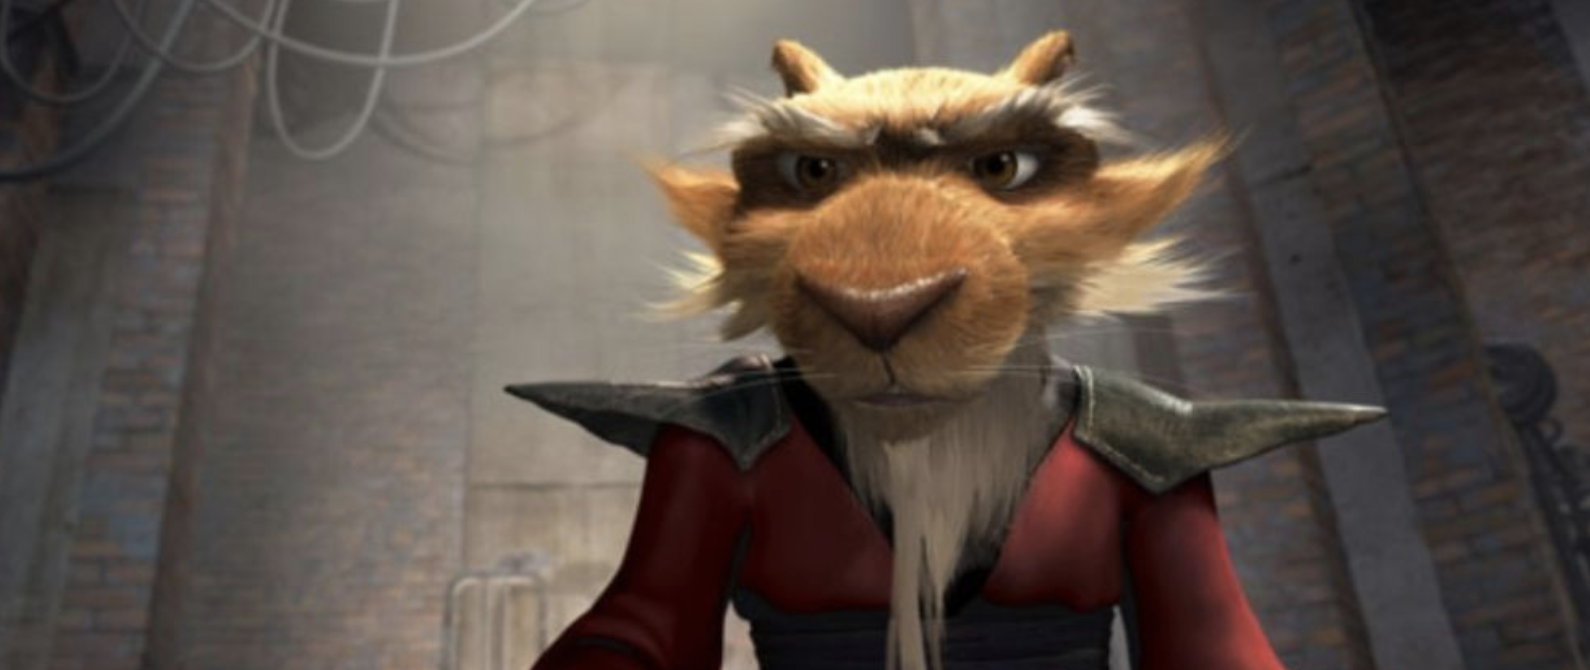 3 Quotes From Master Splinter To Get You Through The Day